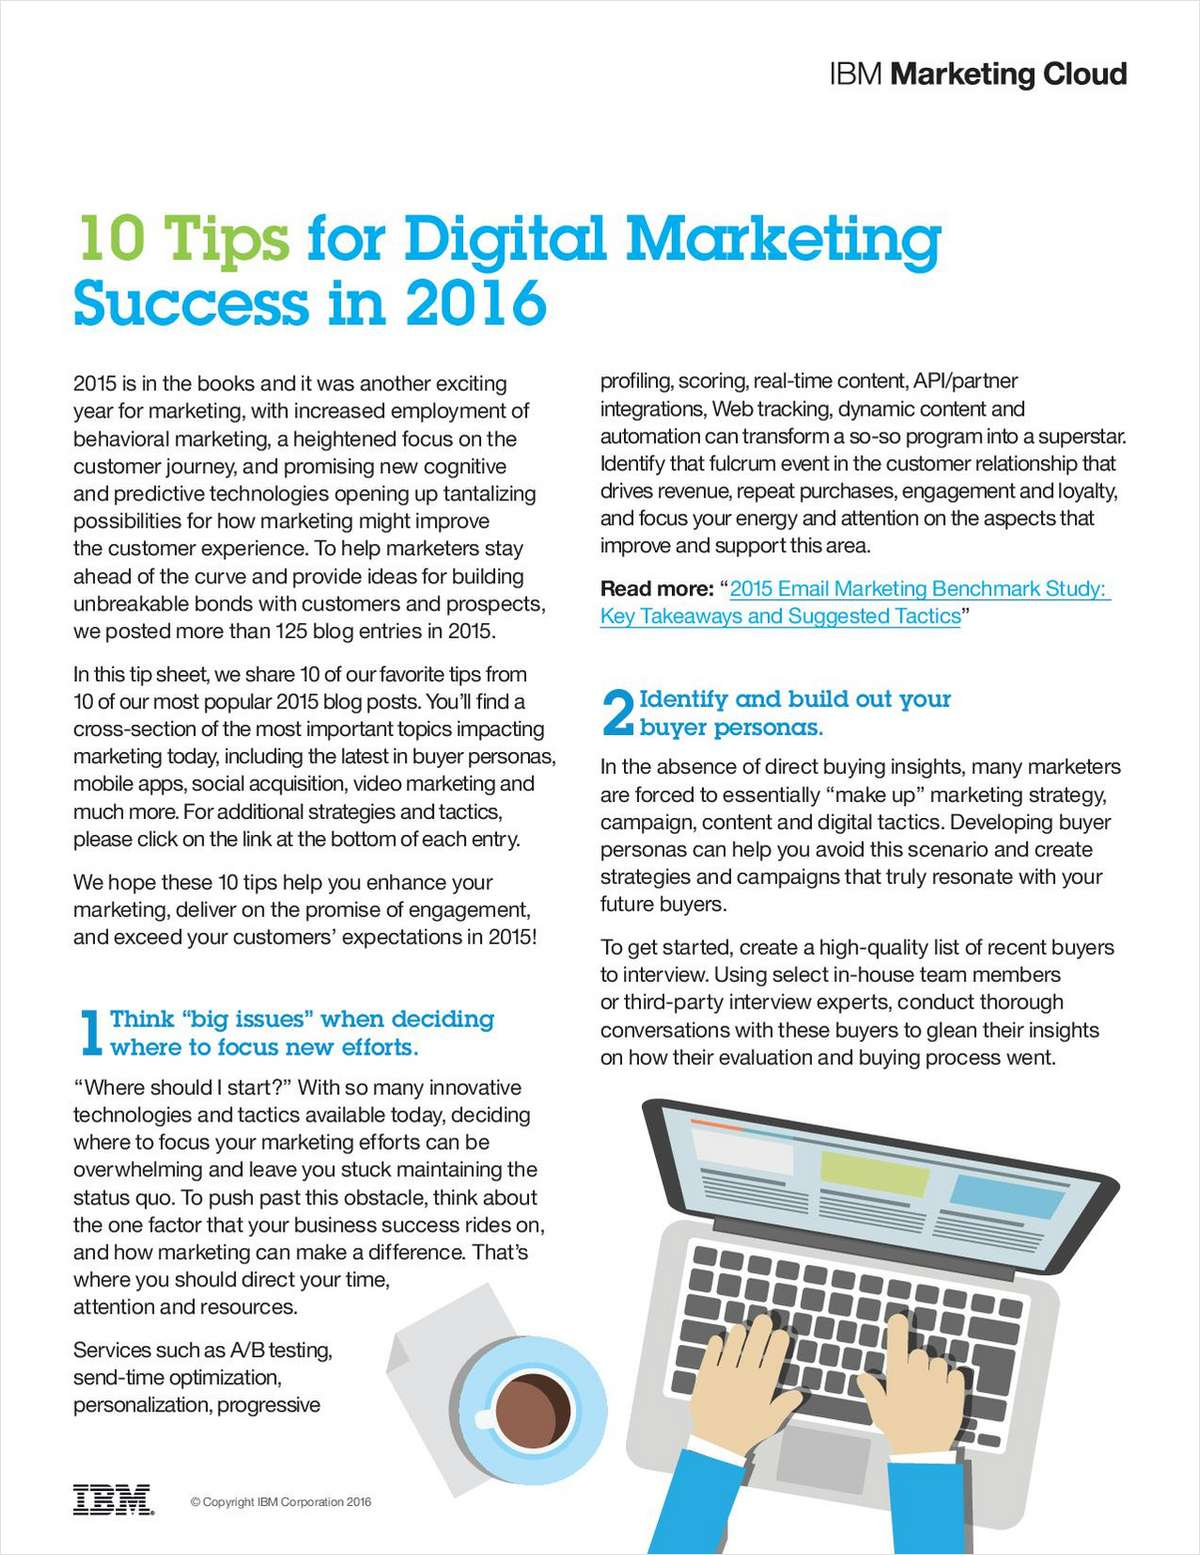 10 Tips for Digital Marketing Success in 2016